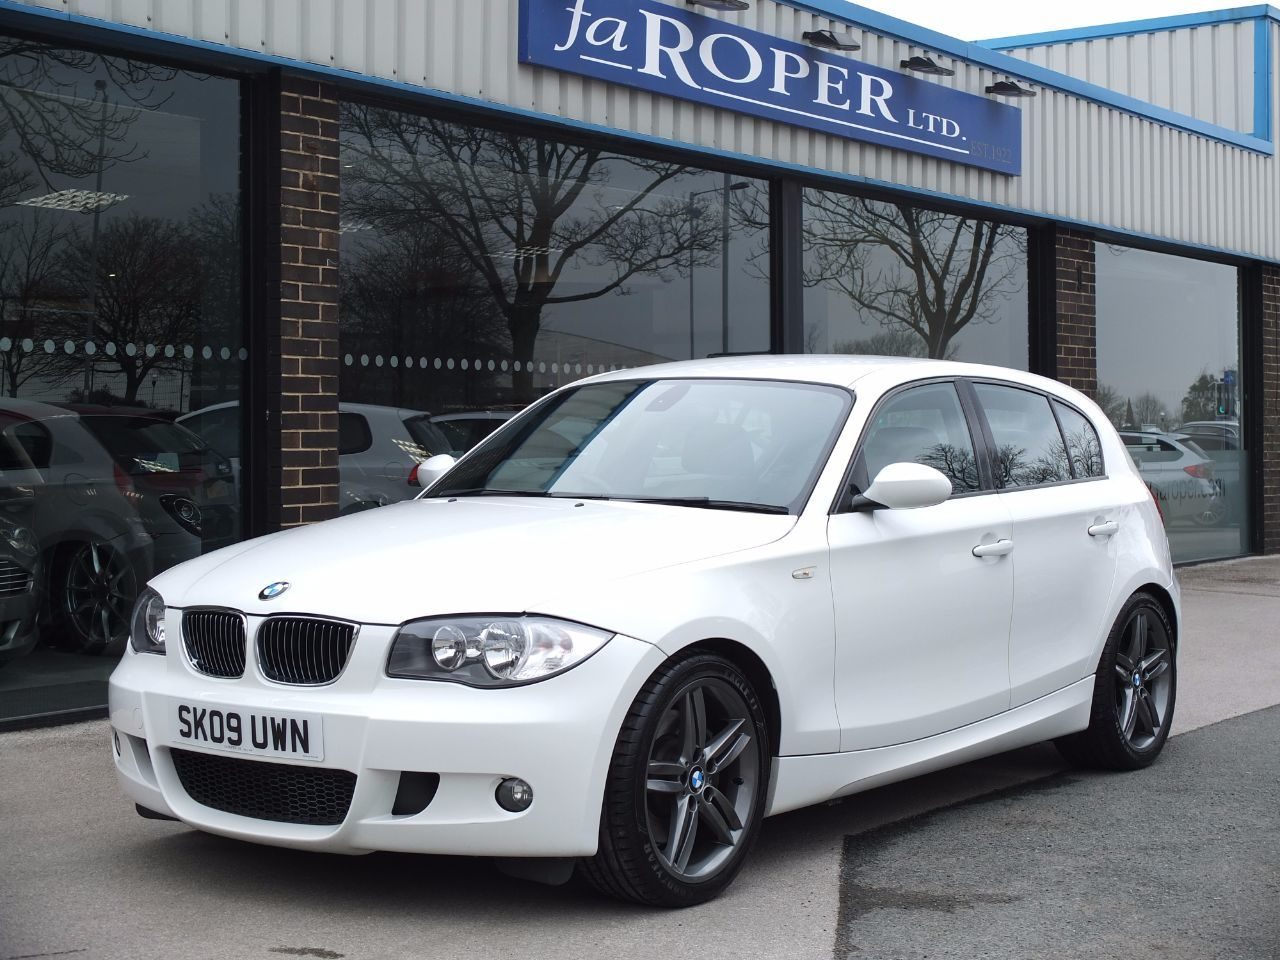 BMW 1 Series 3.0 130i M Sport 5 door Hatchback Petrol Alpine WhiteBMW 1 Series 3.0 130i M Sport 5 door Hatchback Petrol Alpine White at fa Roper Ltd Bradford